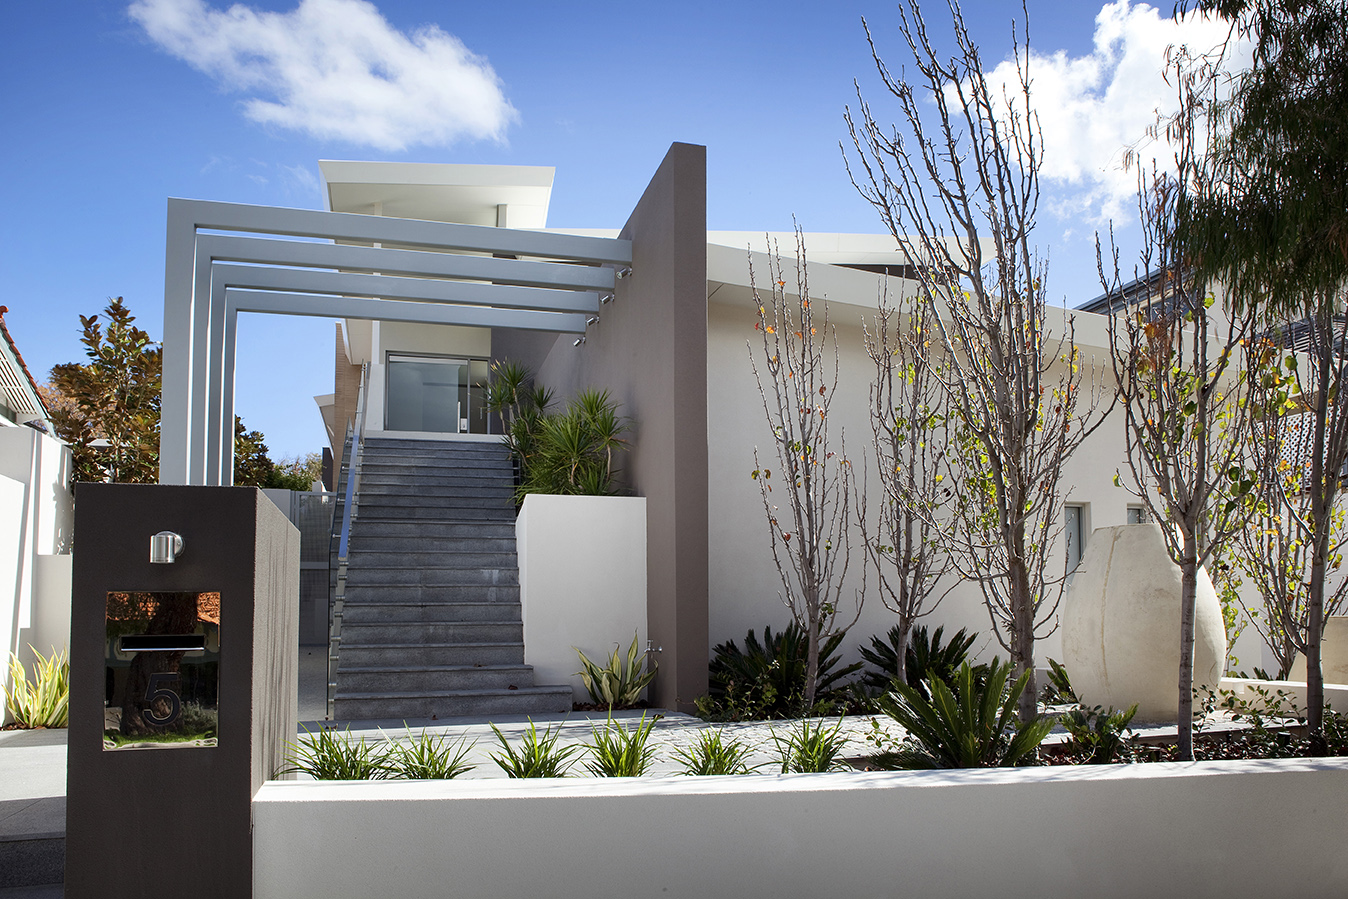 The crisp new front entry to the Cottesloe residence 10 years ago. New landscaping breaking up the new architecture.